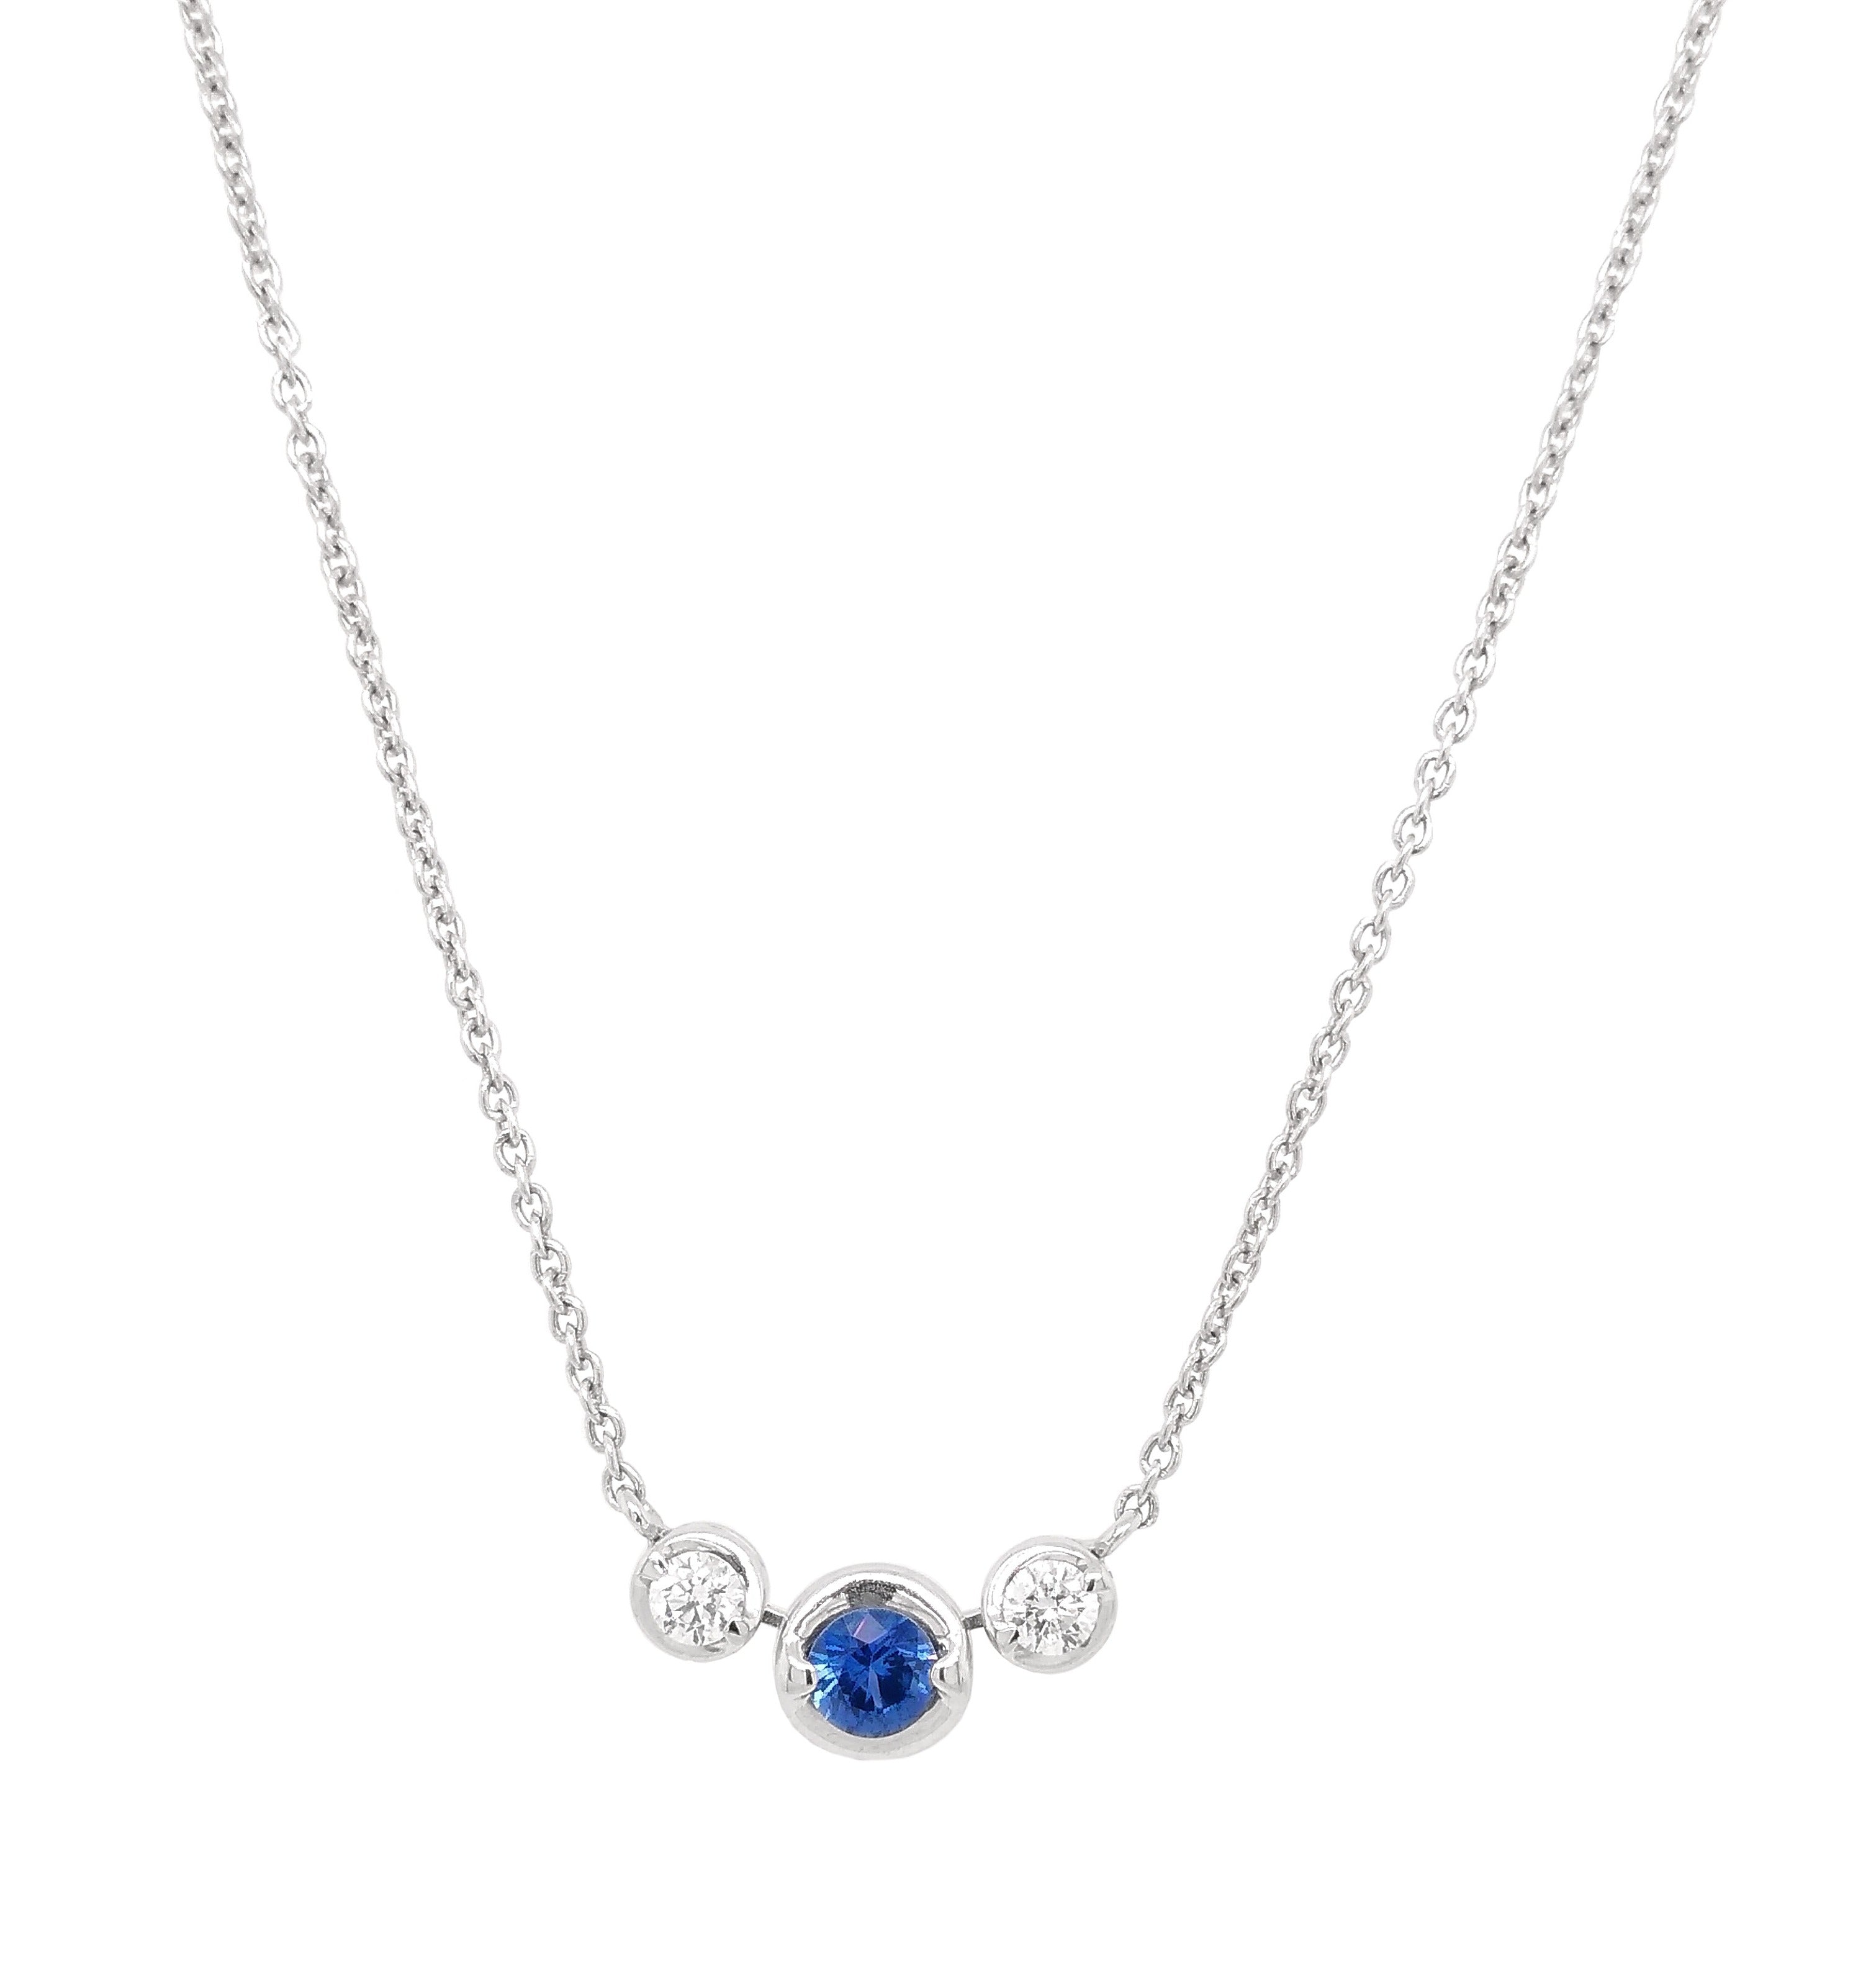 18ct White Gold Madagascan Sapphire & Diamond Necklace